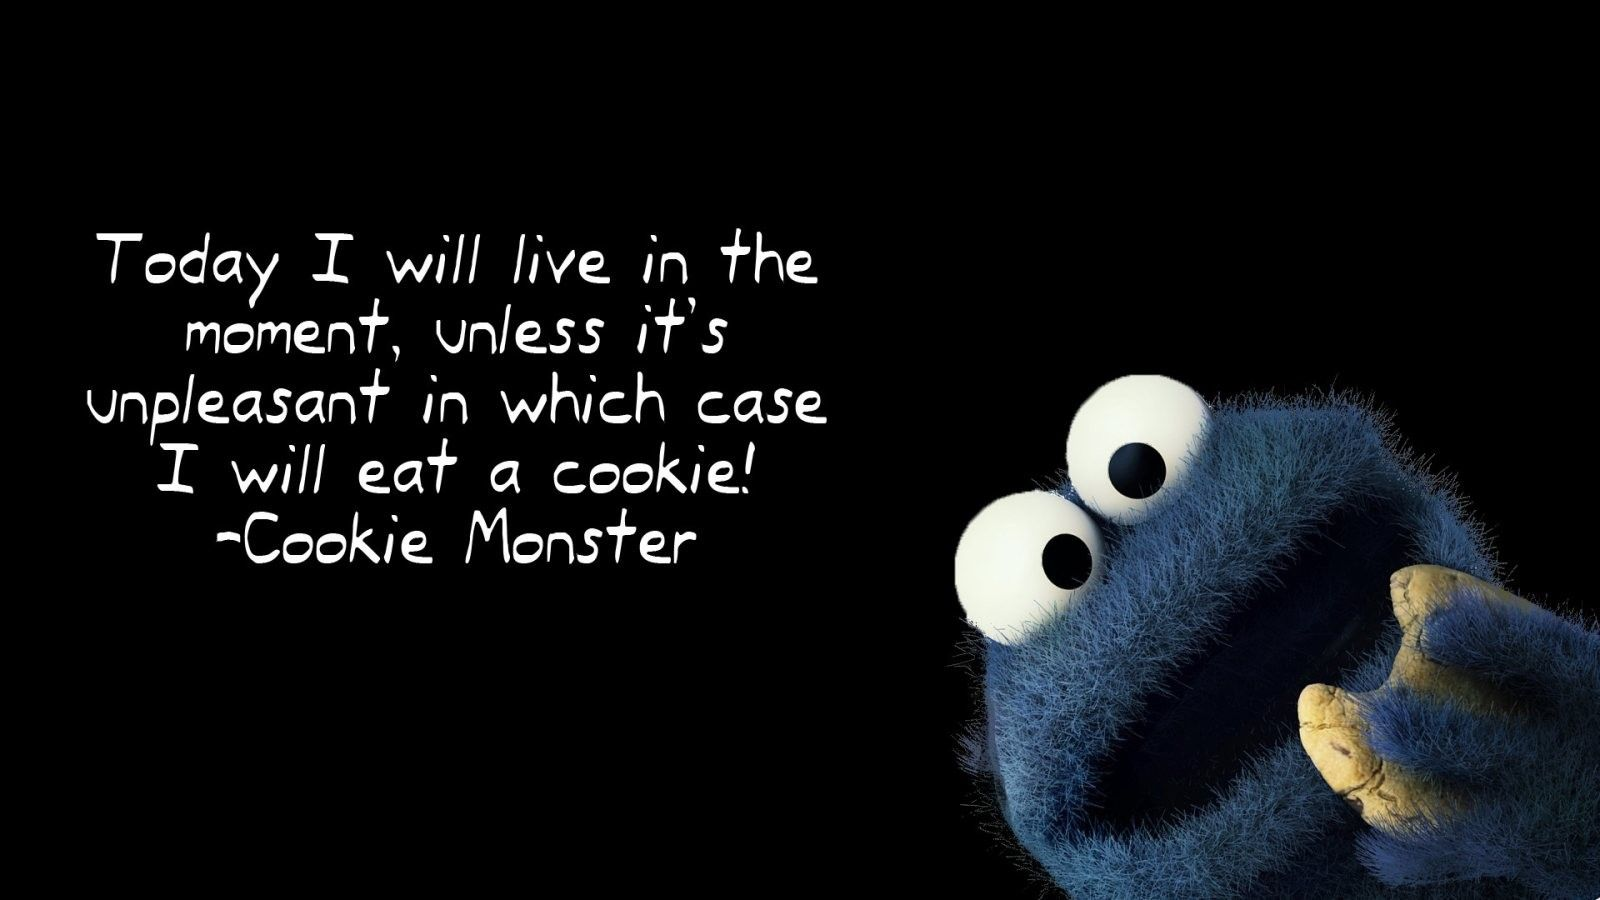 Cookie Monster Wallpaper Cookie Monster Hd Wallpaper Wallpaper Funny Desktop Hd Pictures Cookie Pics Funny Memes Funny